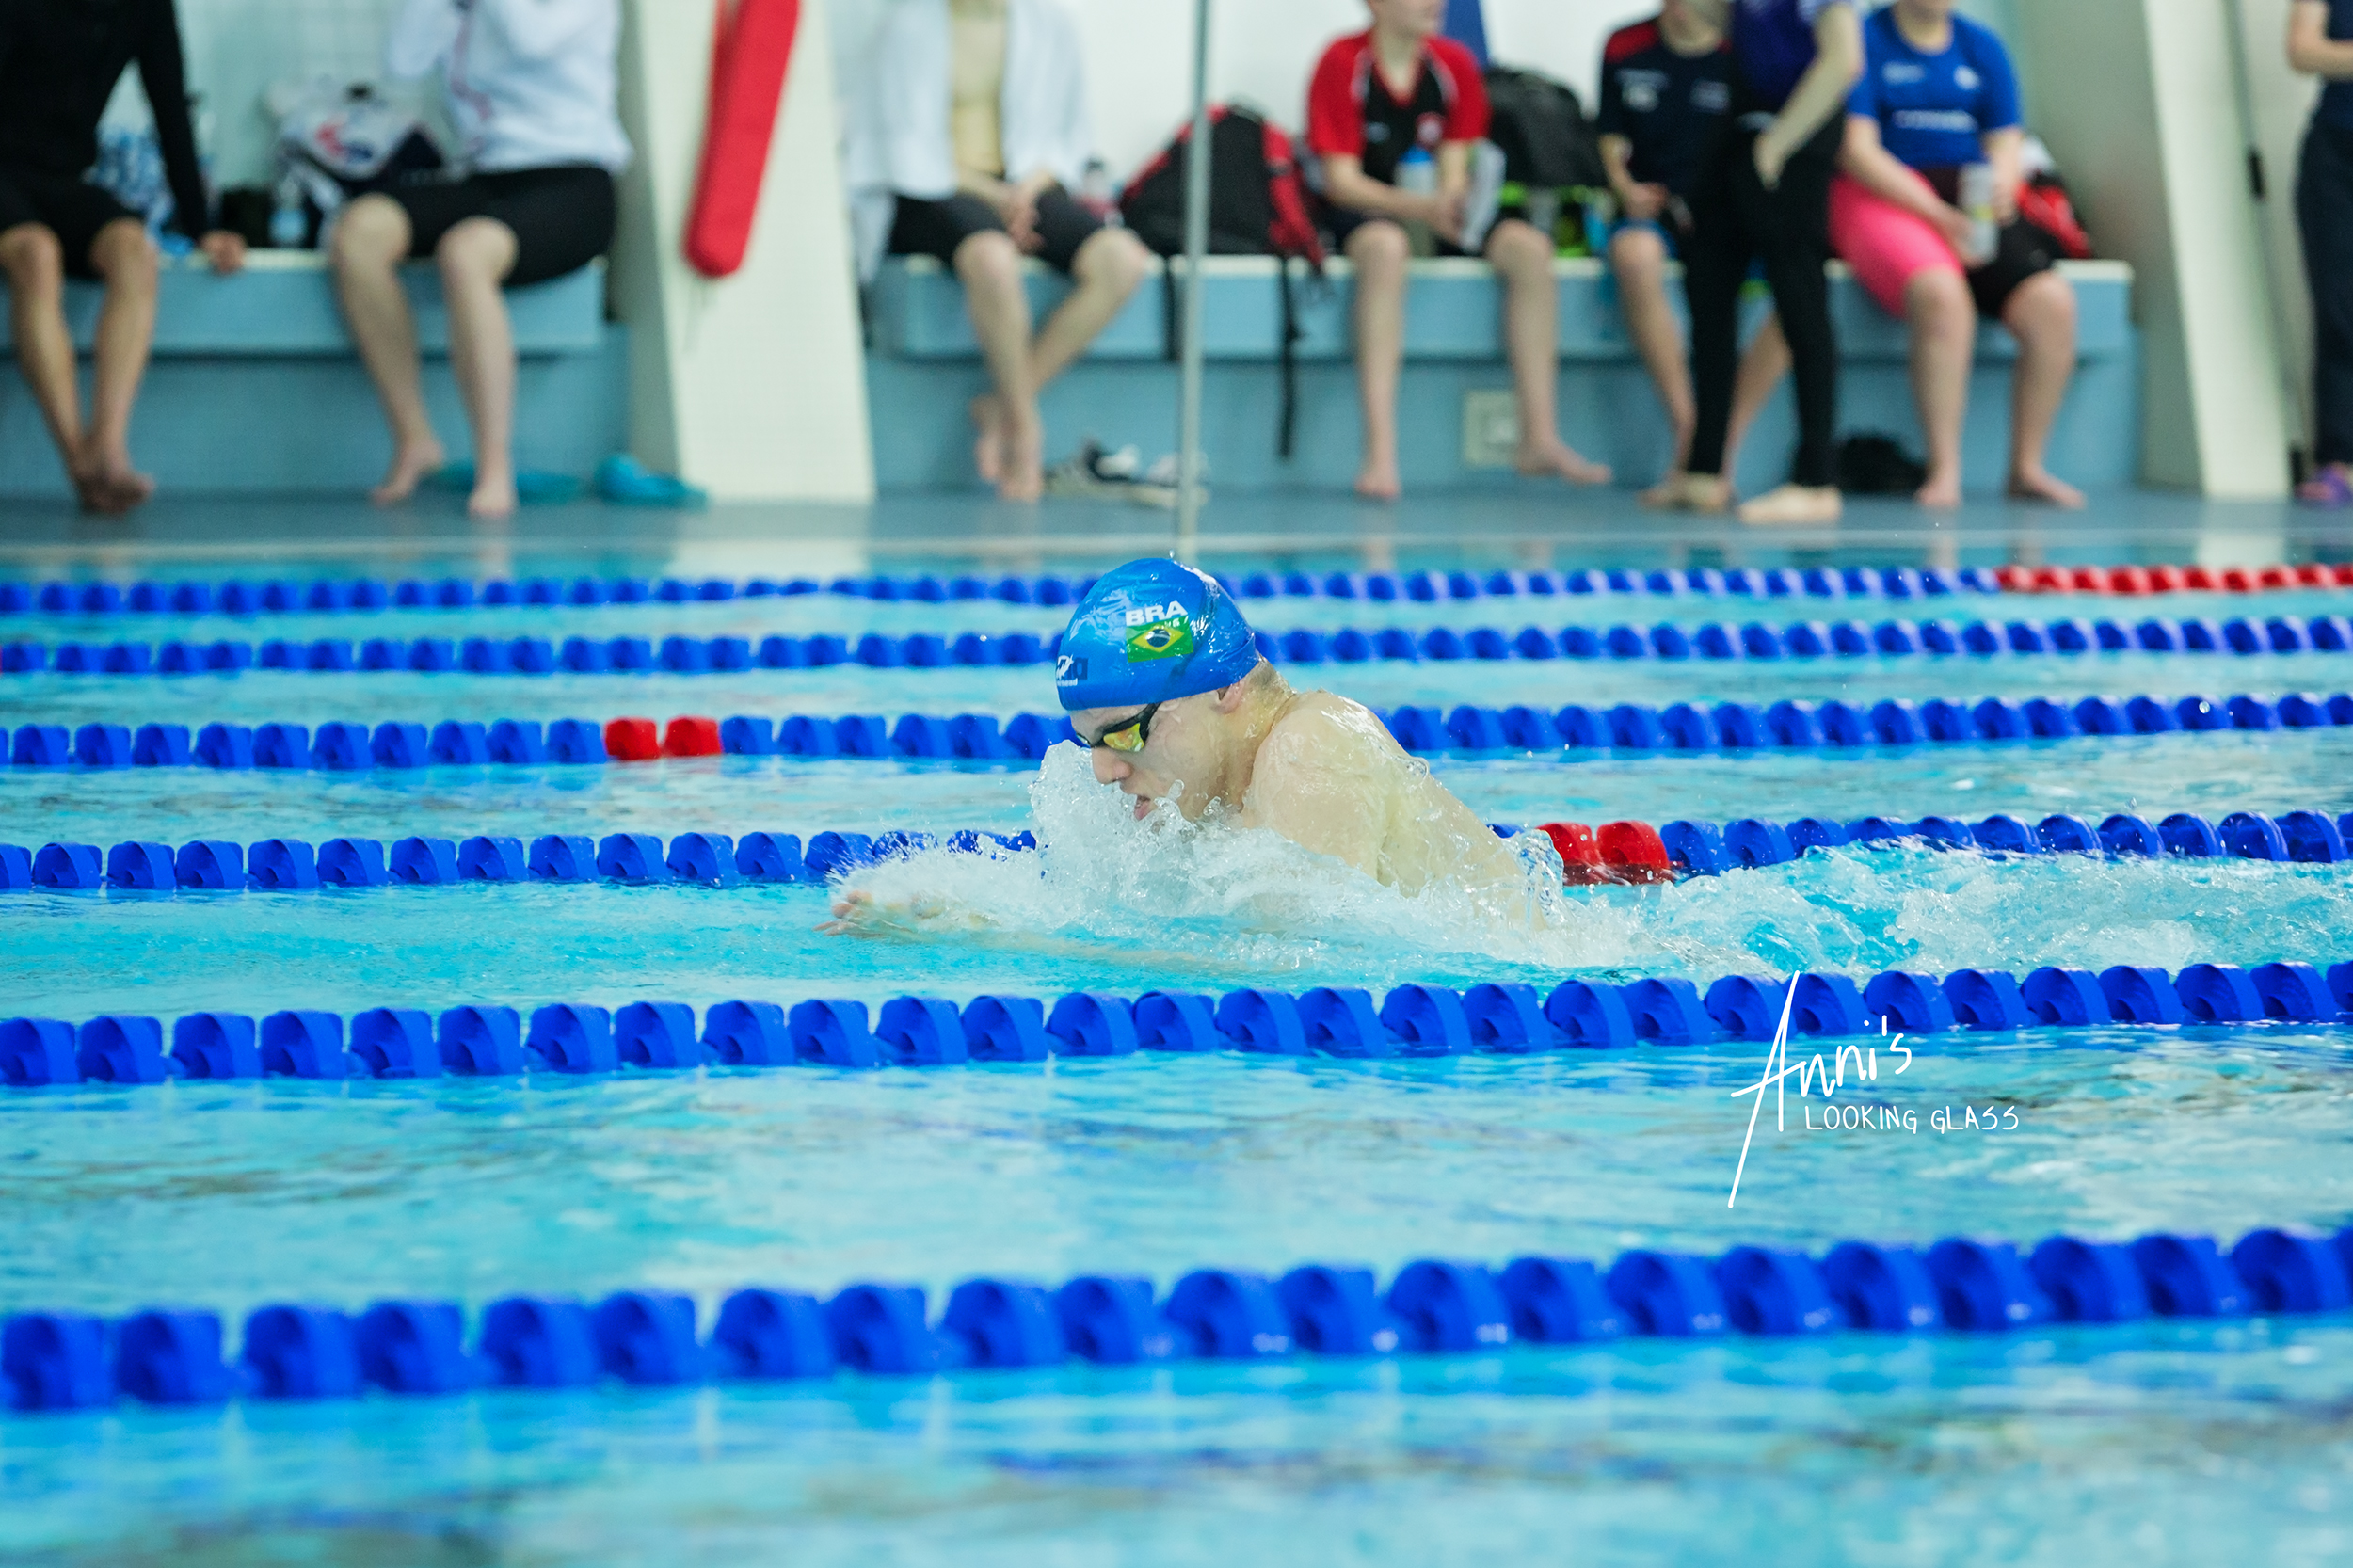 Loughborough Photographer: A young man in a blue ap with the Brazilian flag competing in a swimming race at Loughborough University's pool. 24th March 2018